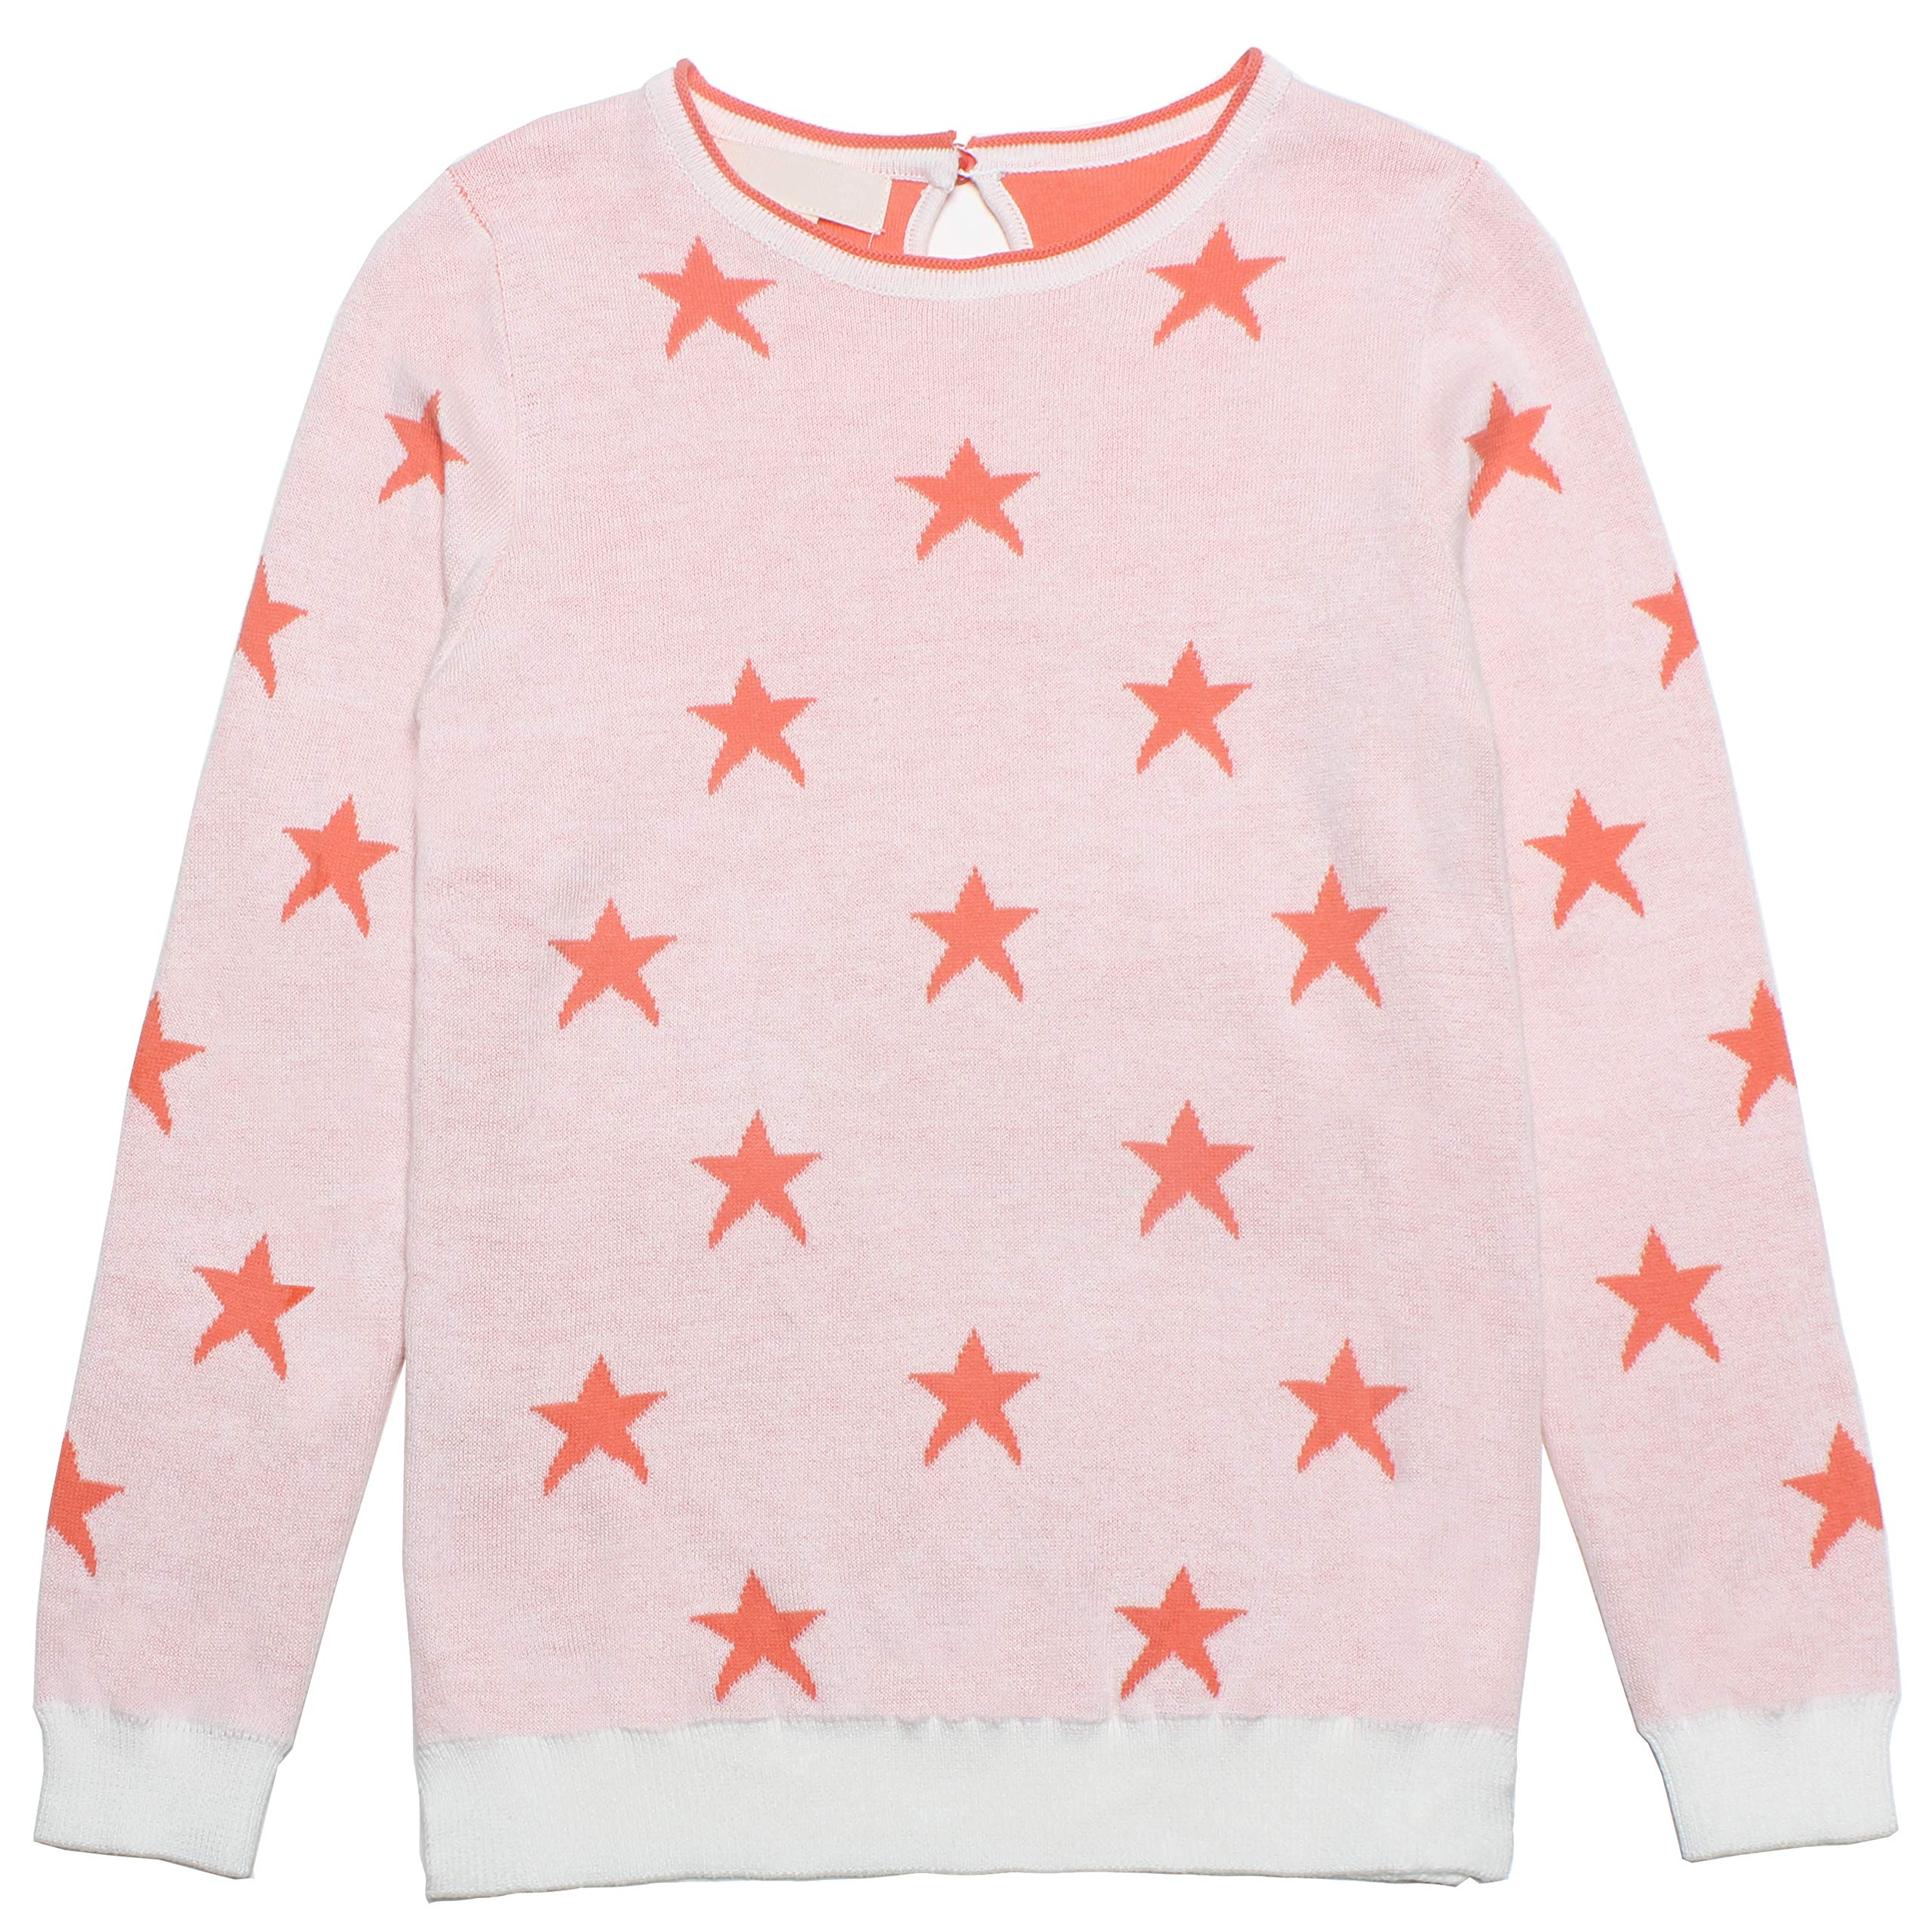 Mini Phoebee Little Girls' Long Sleeve Crew Neck Cotton Knit Pullover Sweater with Cute Jacquard Star Pattern